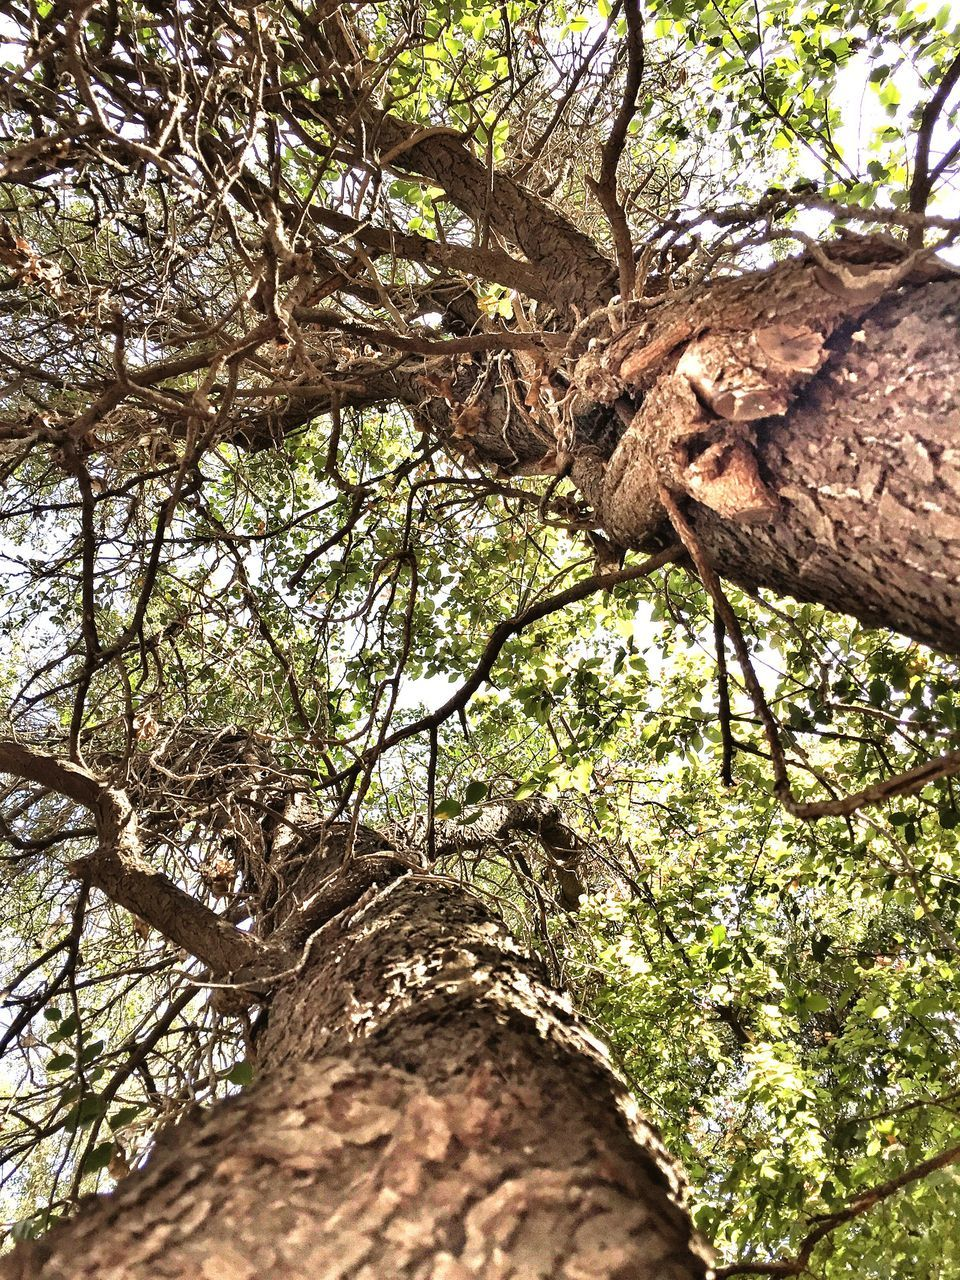 tree, tree trunk, branch, low angle view, nature, growth, day, outdoors, no people, beauty in nature, forest, bark, close-up, rope swing, animal themes